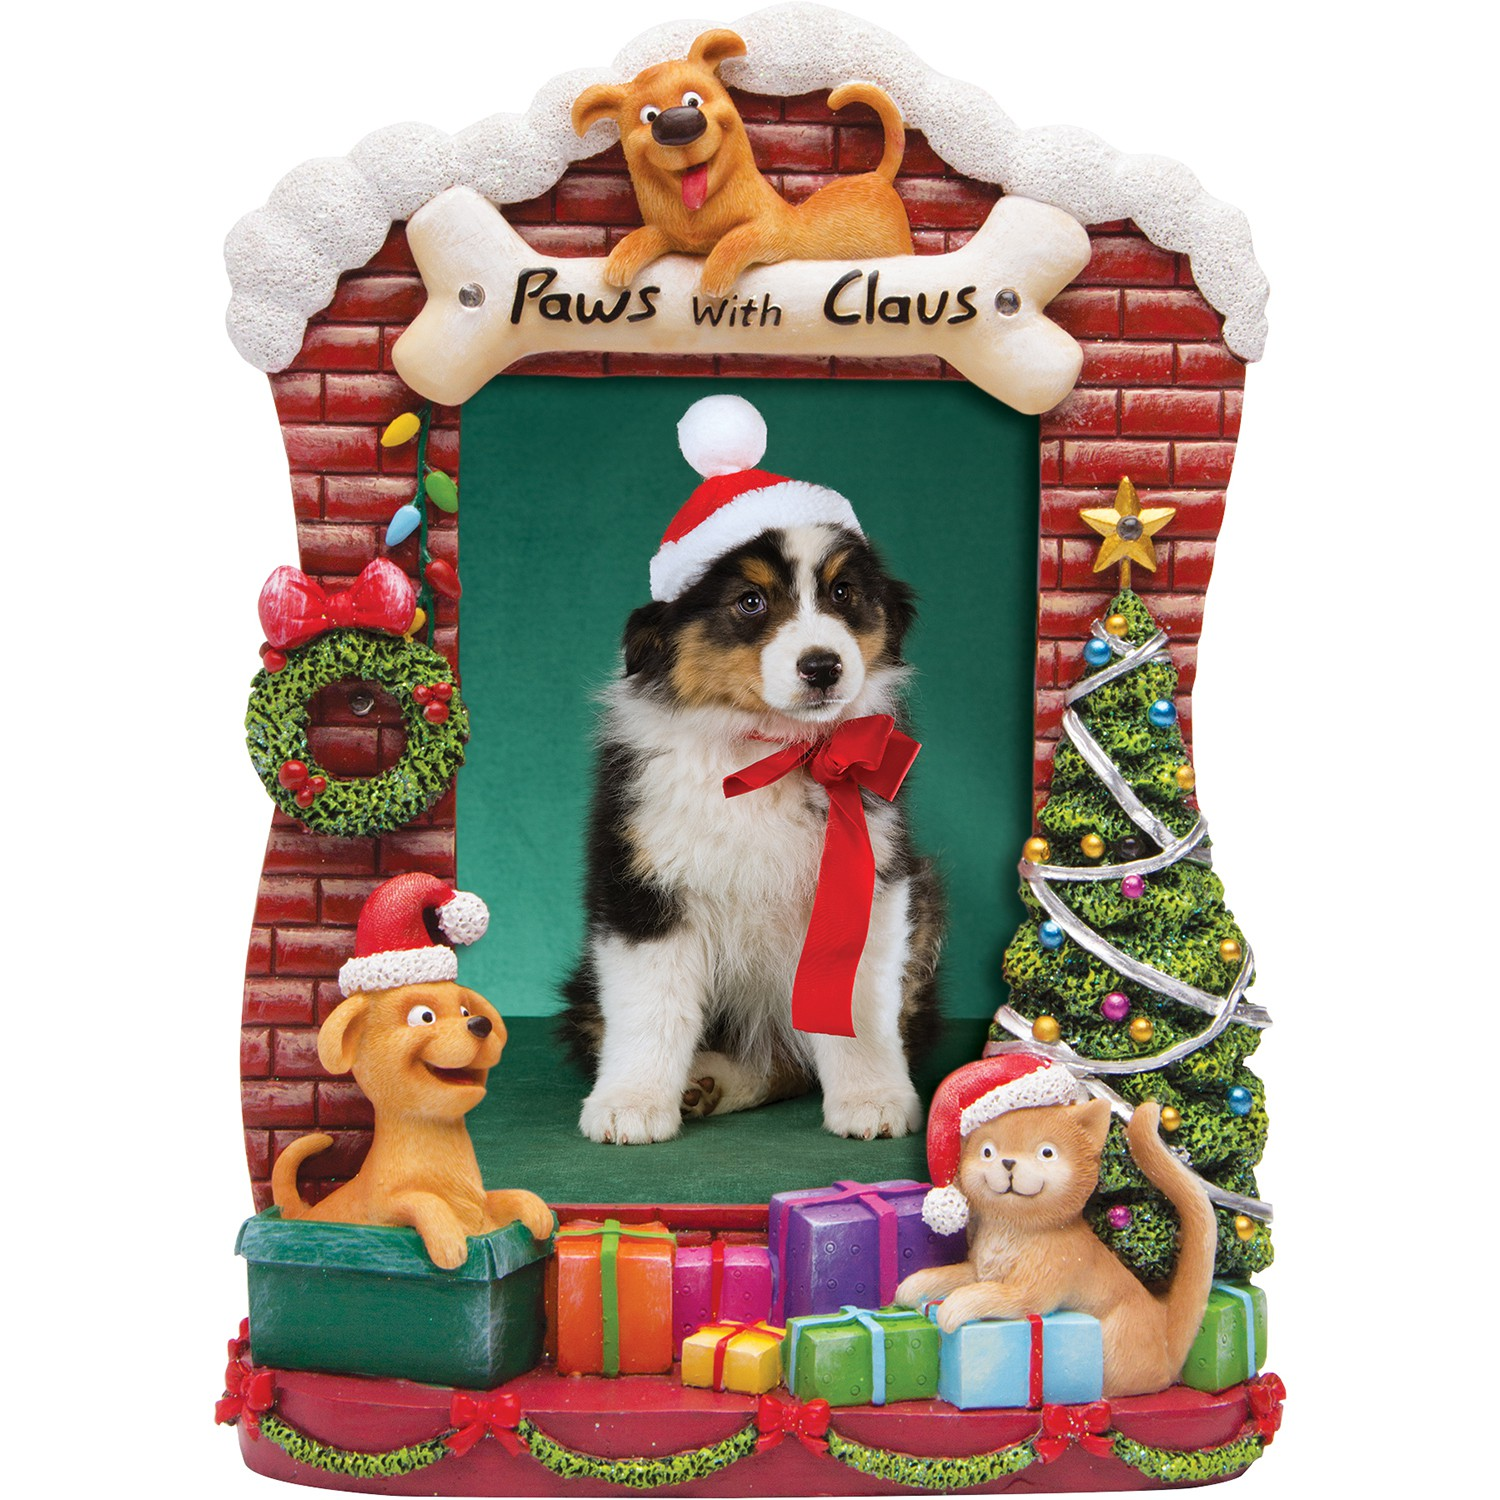 Light up paws with claus resin picture frame neil enterprises light up paws with claus resin picture frame jeuxipadfo Images